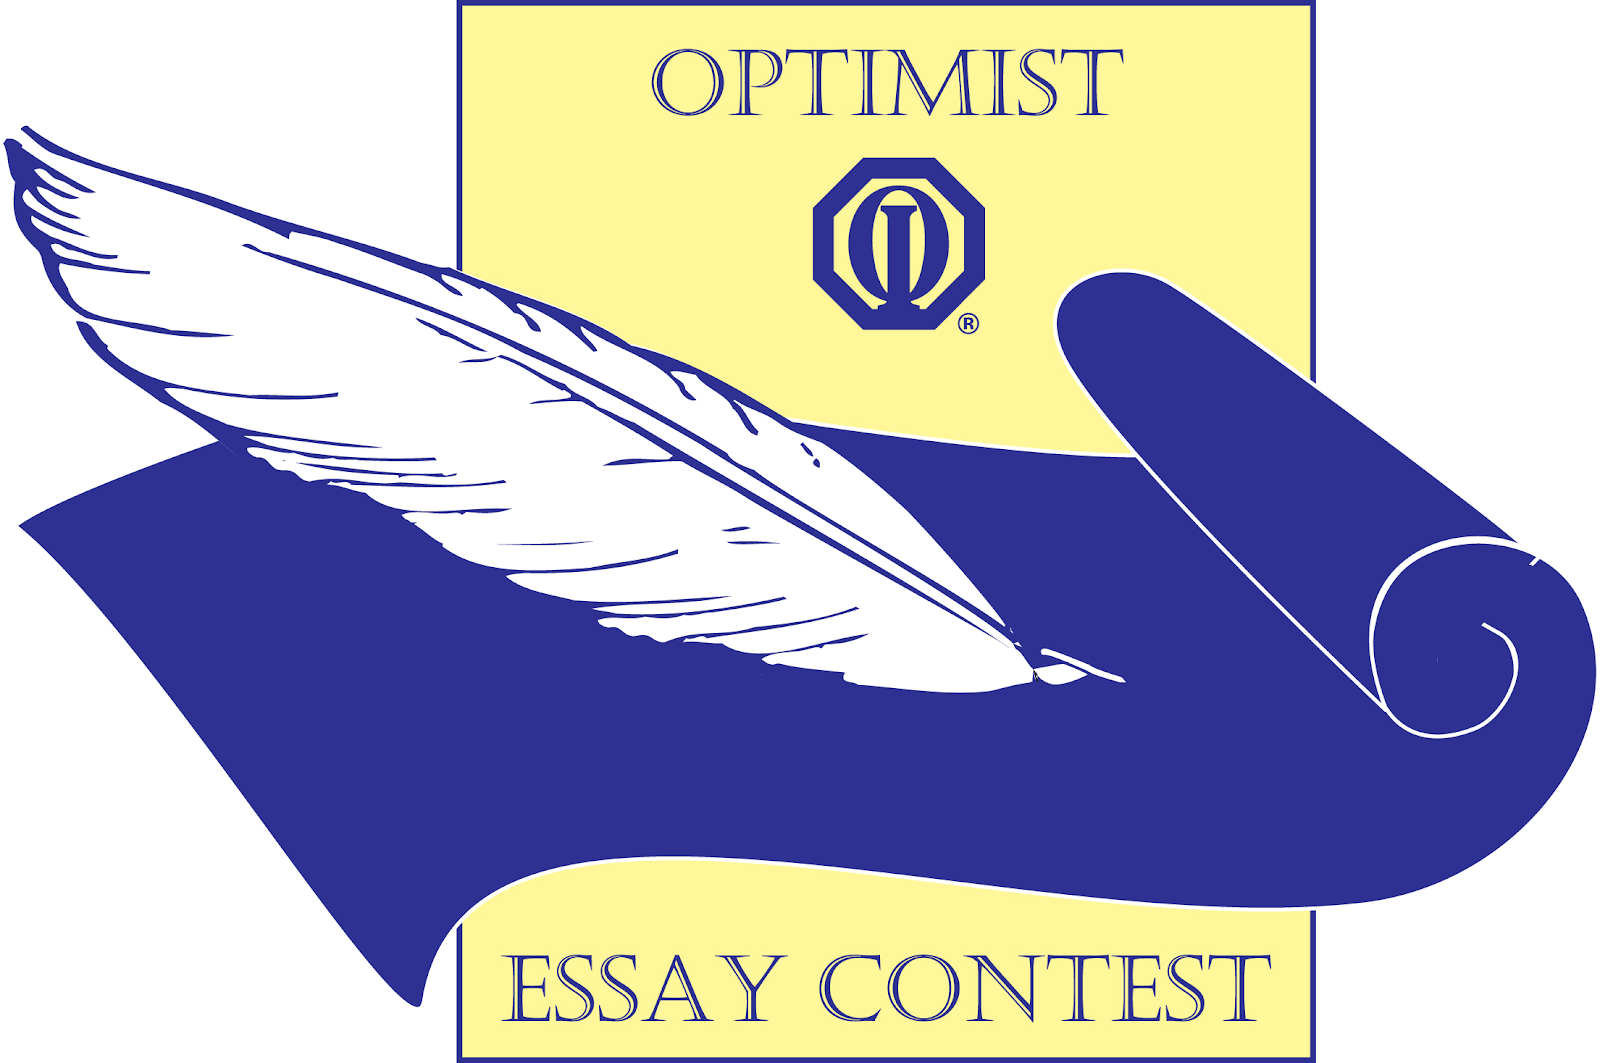 essay contest for high schoolers Writing skills you've mastered in your english classes could pay off with big tuition prizes for college from scholarship essay contests  high school seniors .